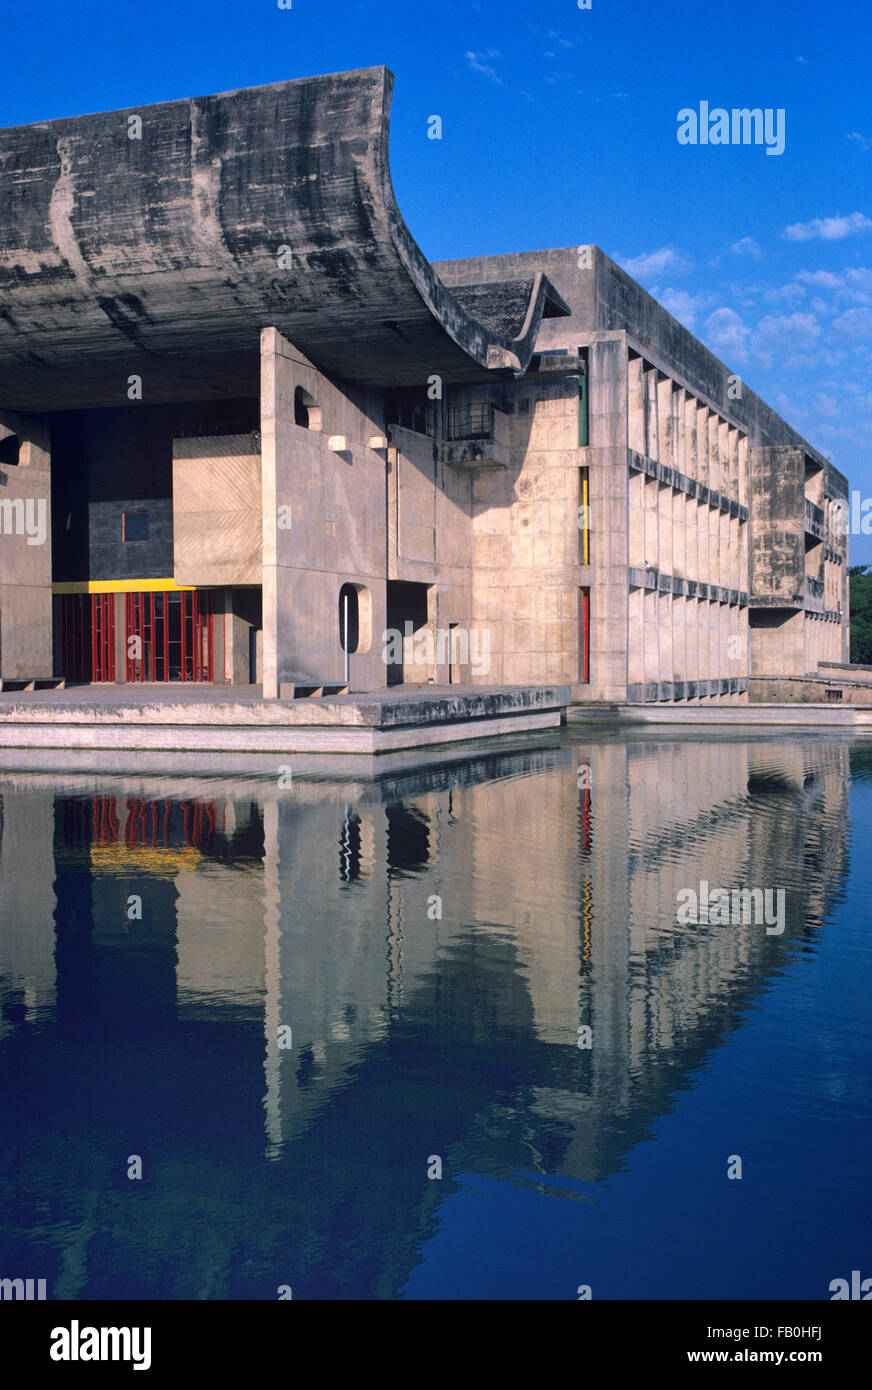 The 'Palace of Assembly' Parliament Building or Legislative Assembly (1953) reflected in ornamental Pool - Stock Image